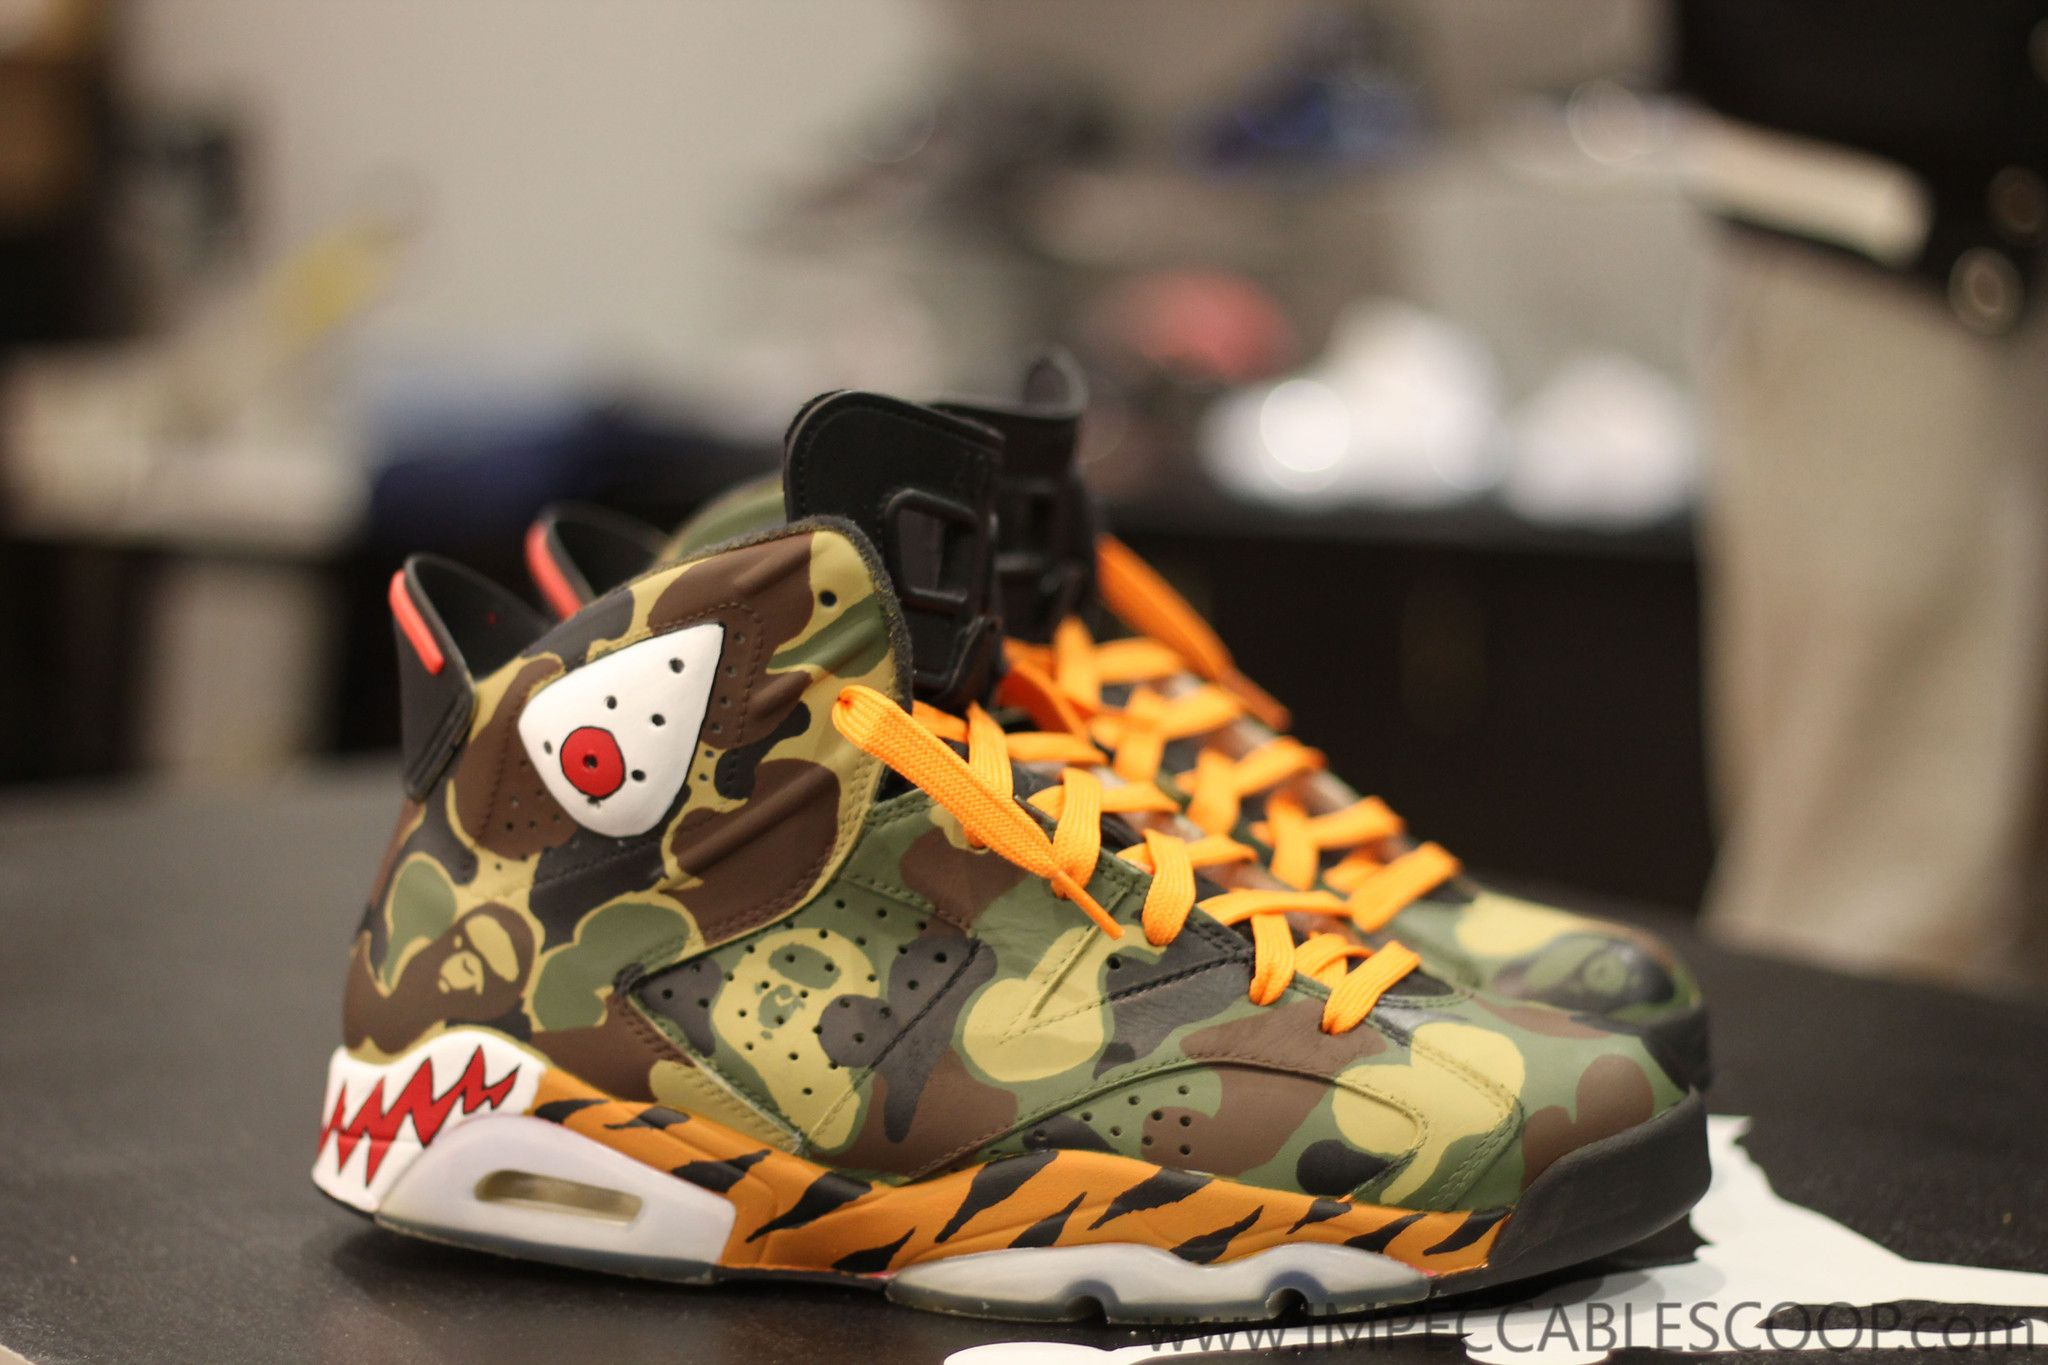 Nike Air Jordan VI BAPE custom